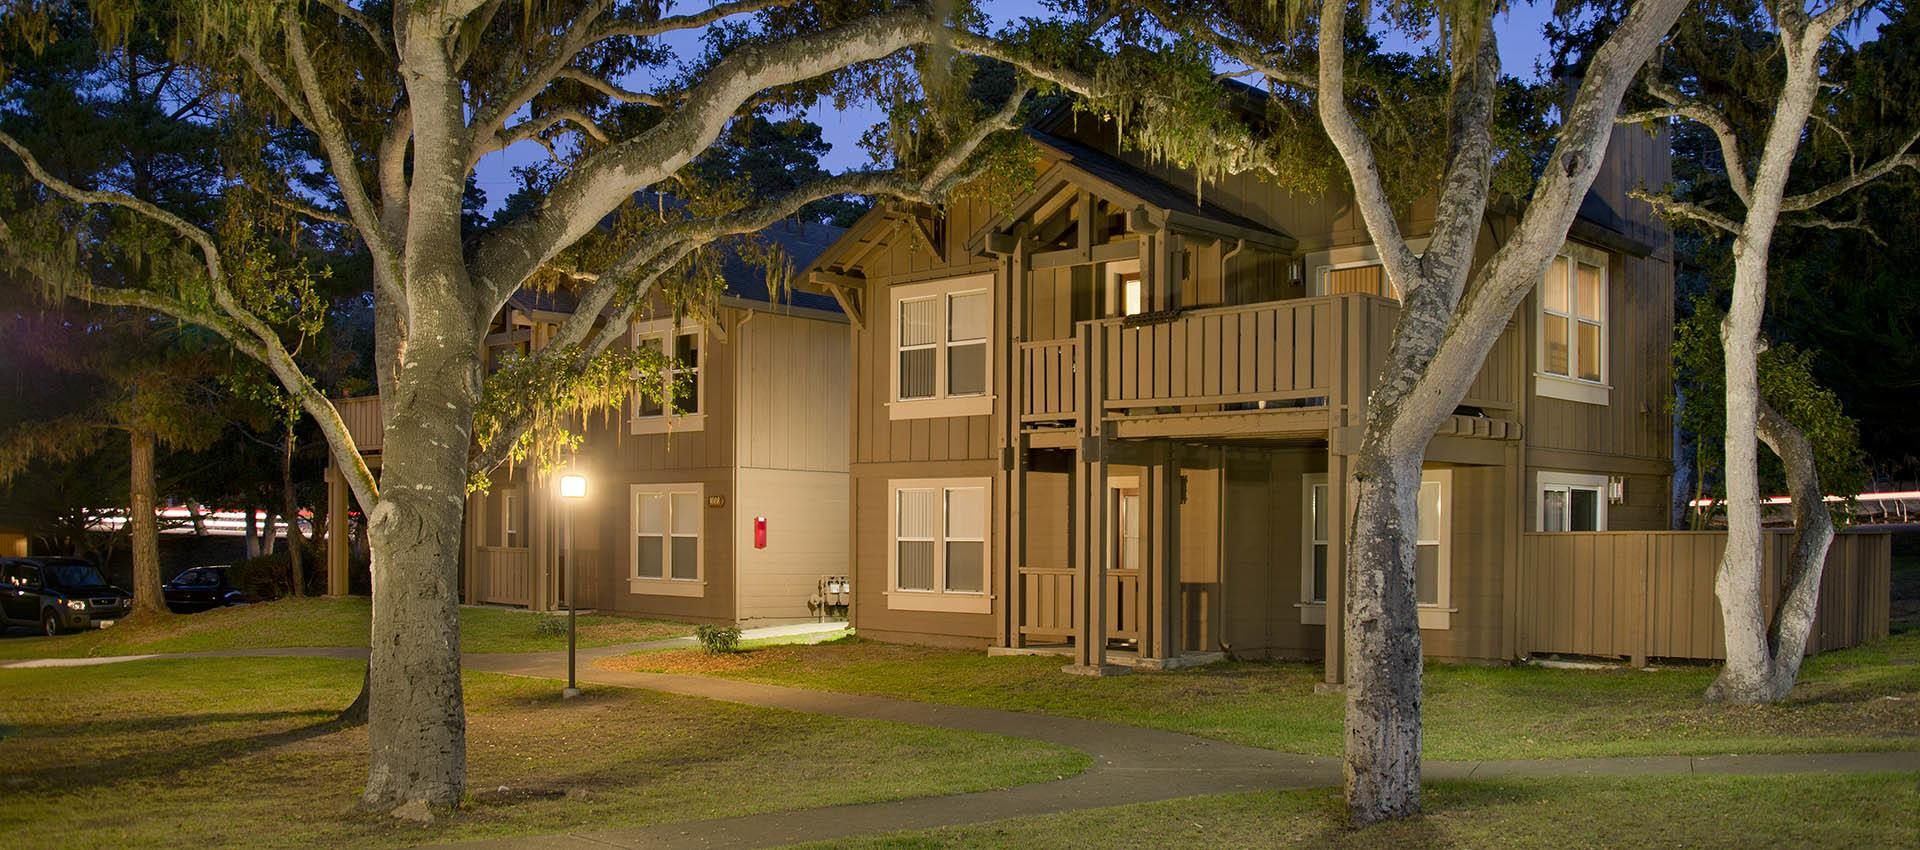 Exterior Of Apartment With Grass at Seventeen Mile Drive Village Apartment Homes in Pacific Grove